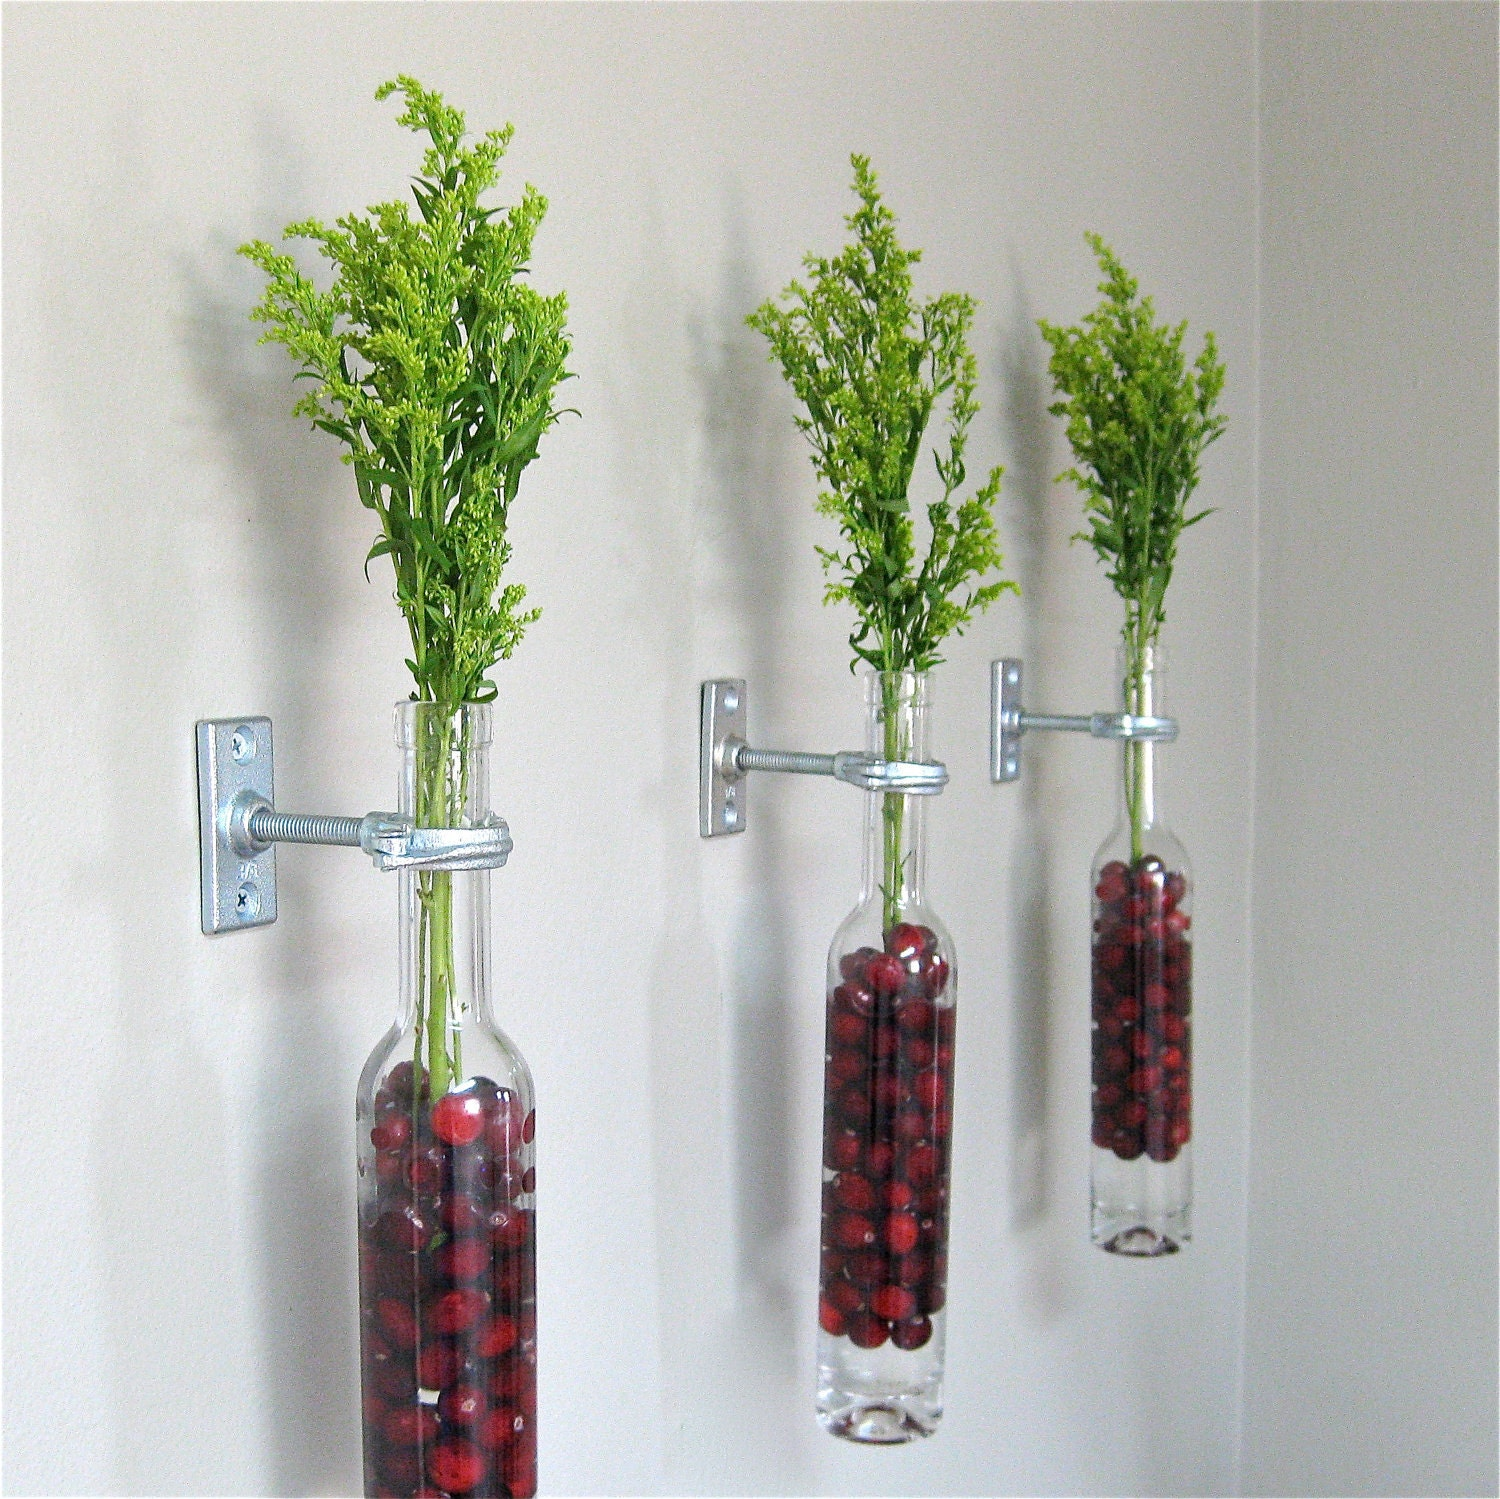 3 wine bottle wall flower vases wall vase wall decor - Flower vase decoration ideas ...